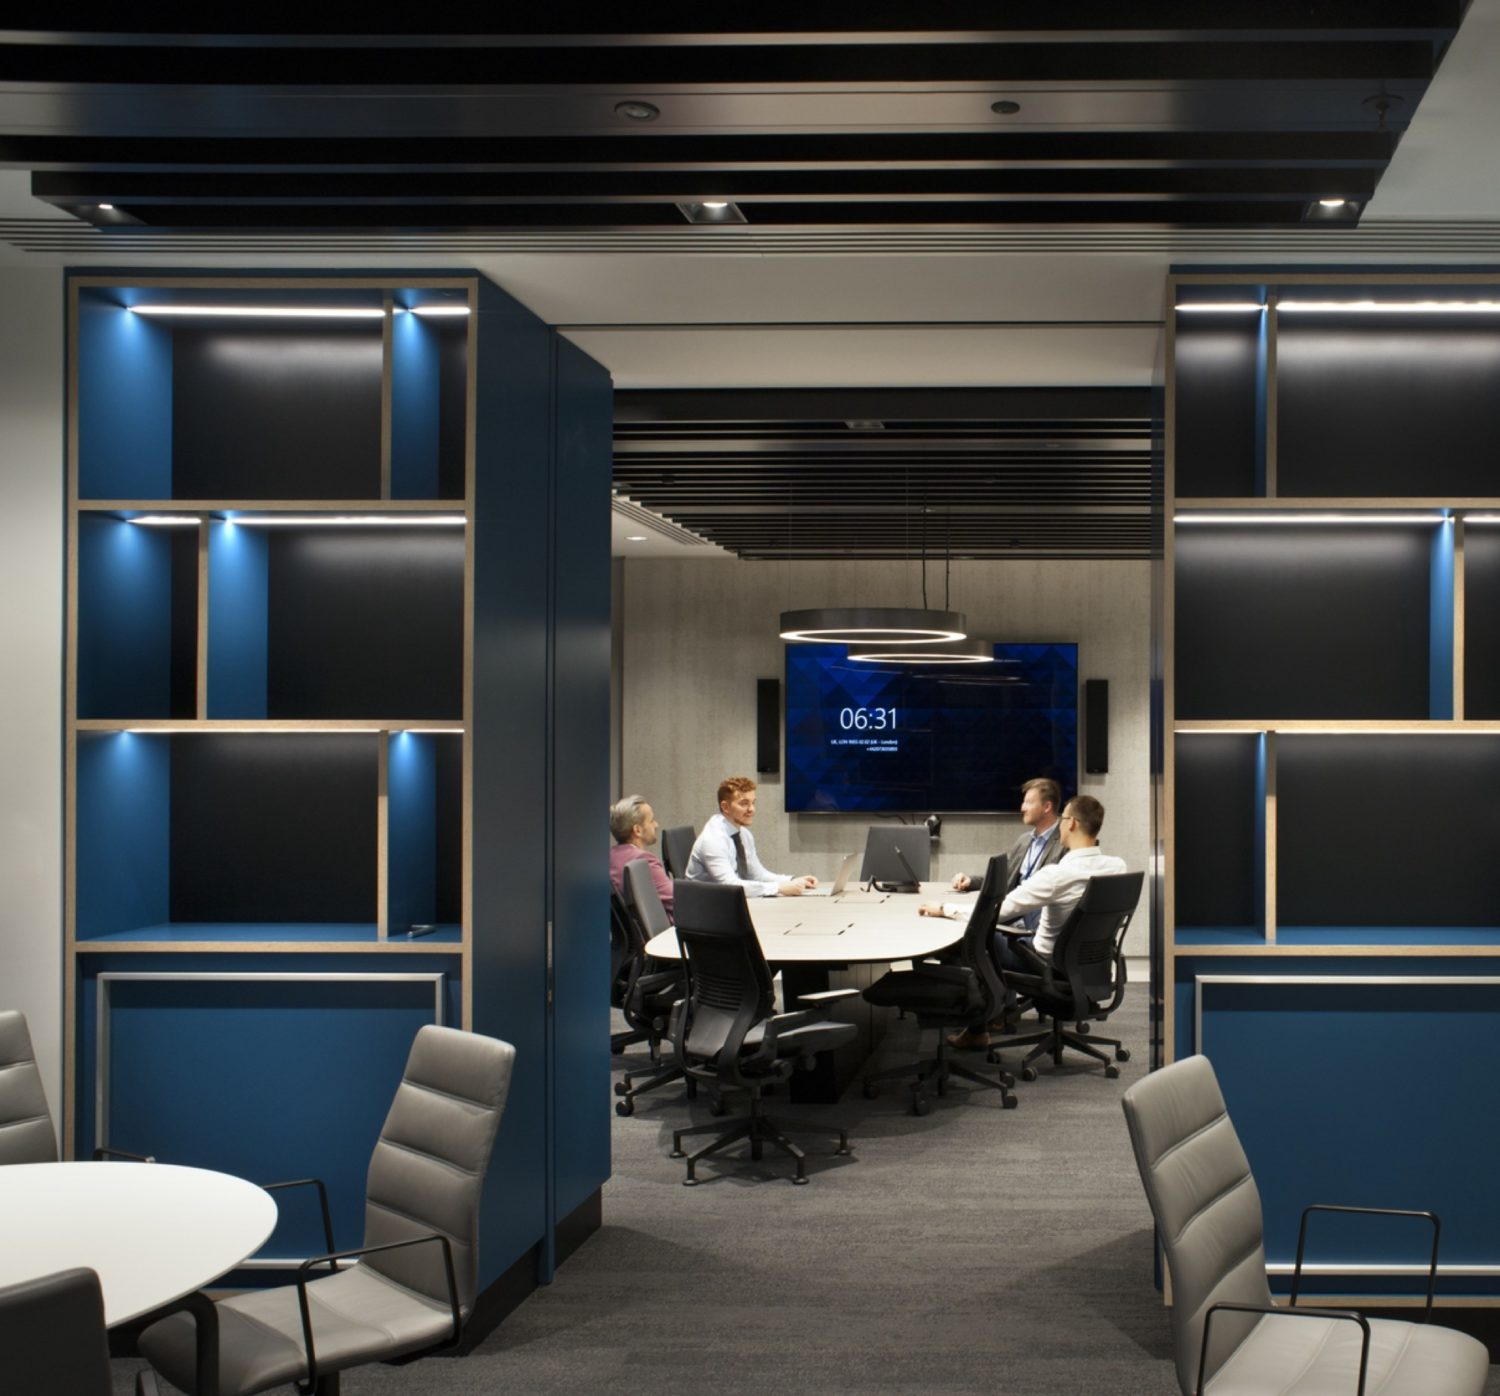 Deloitte smart meeting room fit out